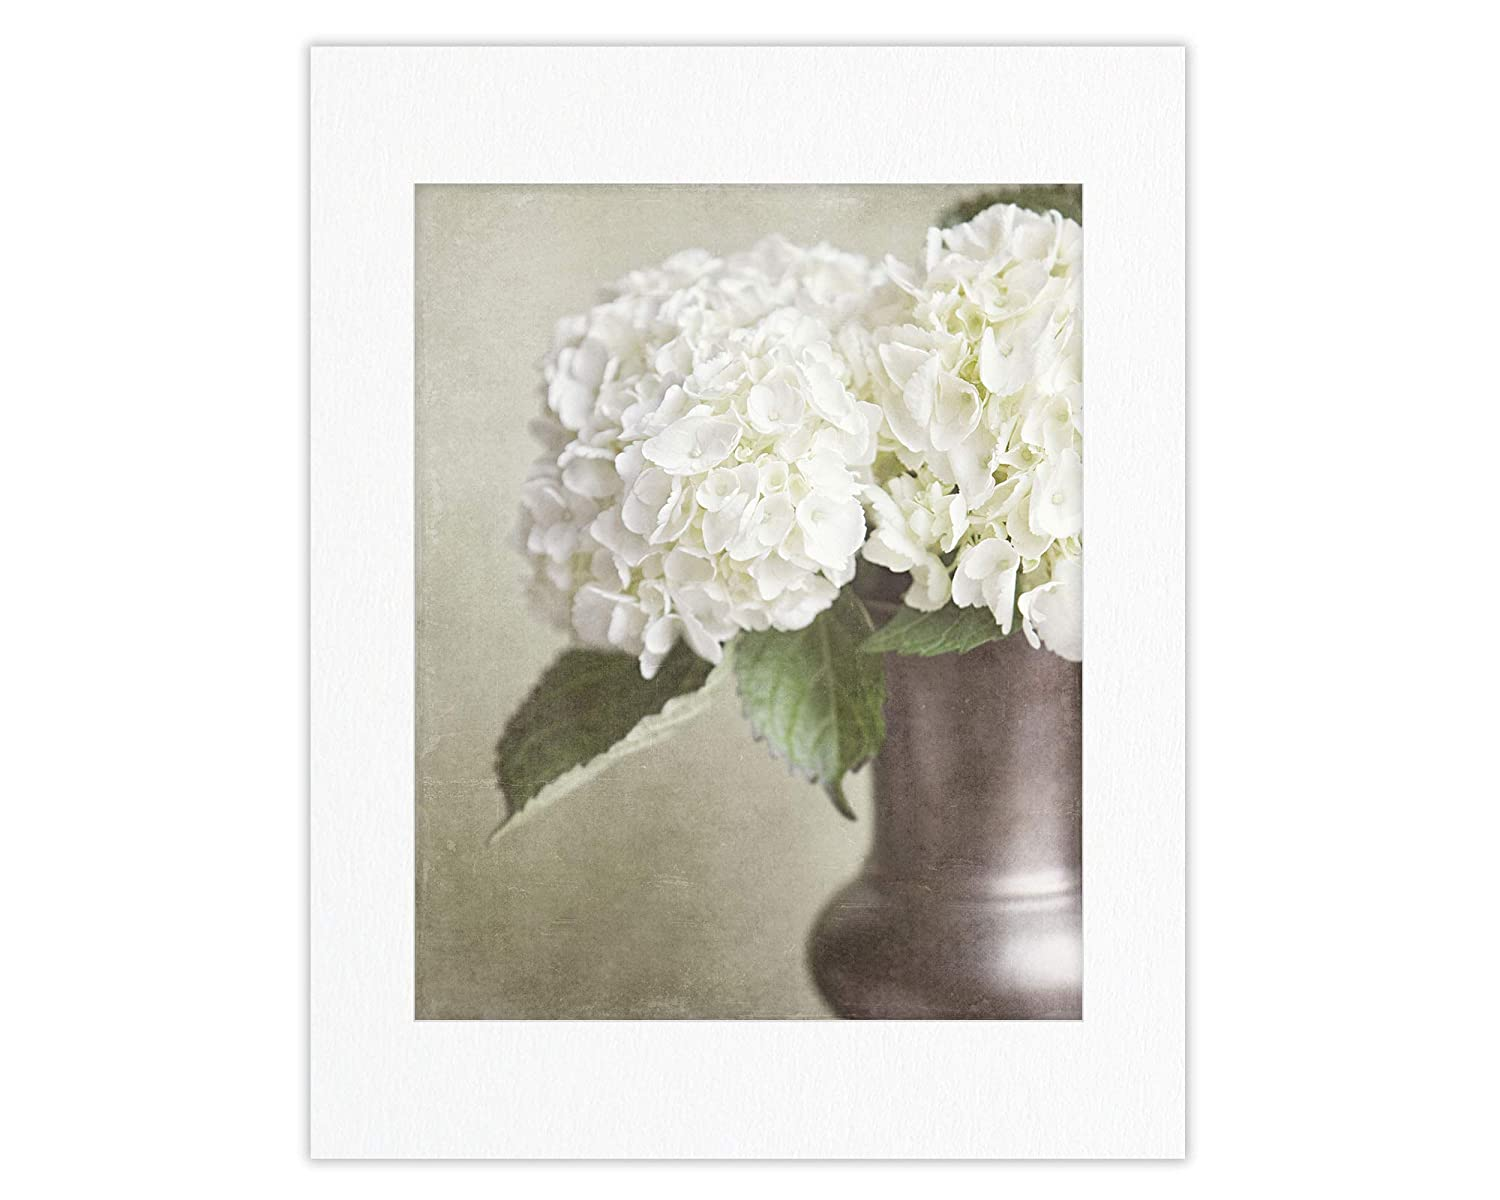 4 5x7 Prints Only Floral Prints Not Framed Bathroom or Nursery. Cherry and Dogwood Blossom Botanical Flowers Art for Bedroom Hydrangea Blue Shabby Chic Wall Decor Set of 4